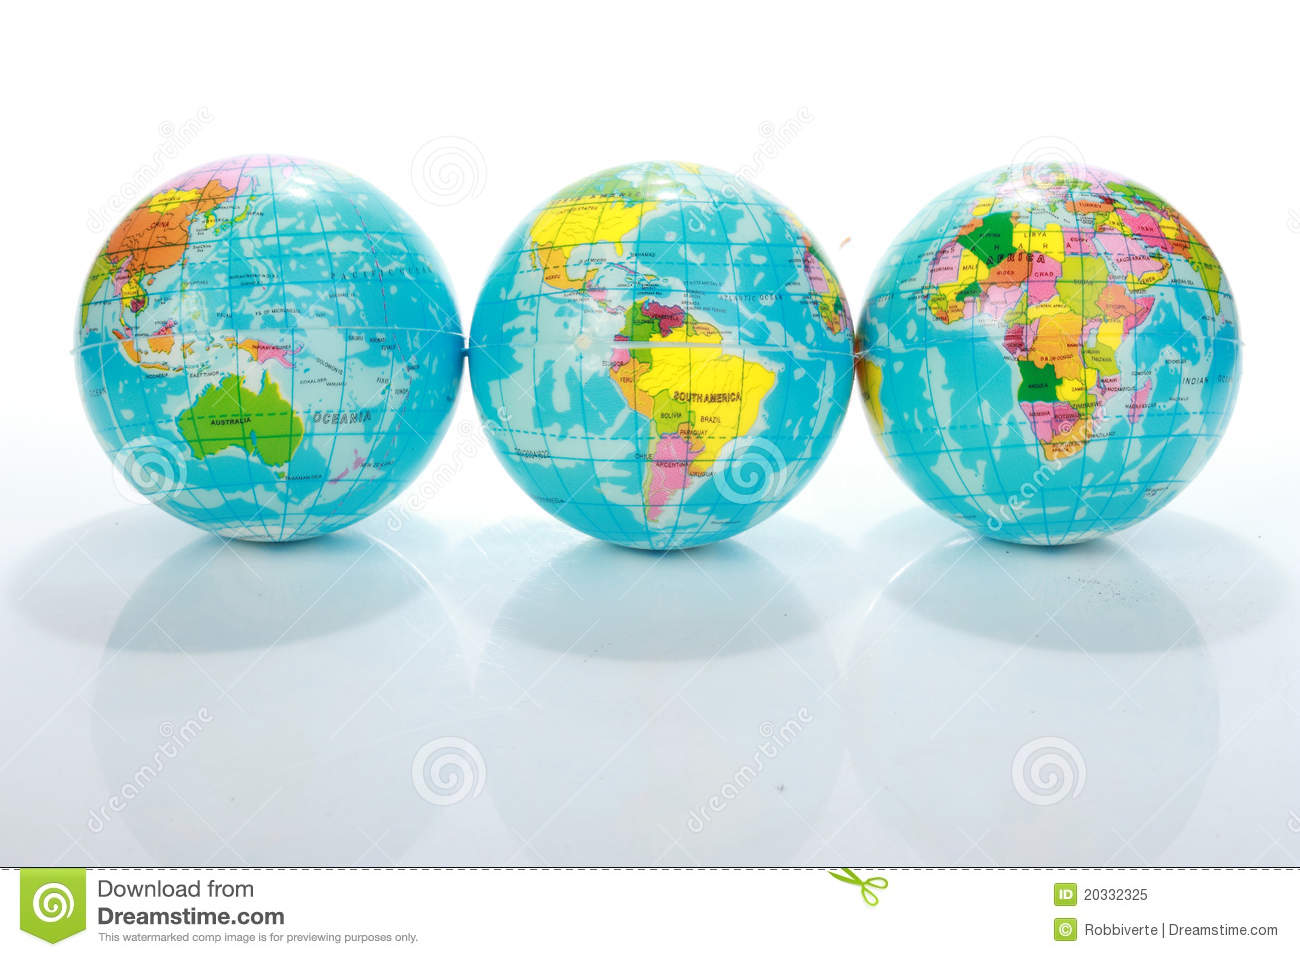 World Globe Maps Royalty Free Photo Image 20332325 – Globe Maps of the Earth